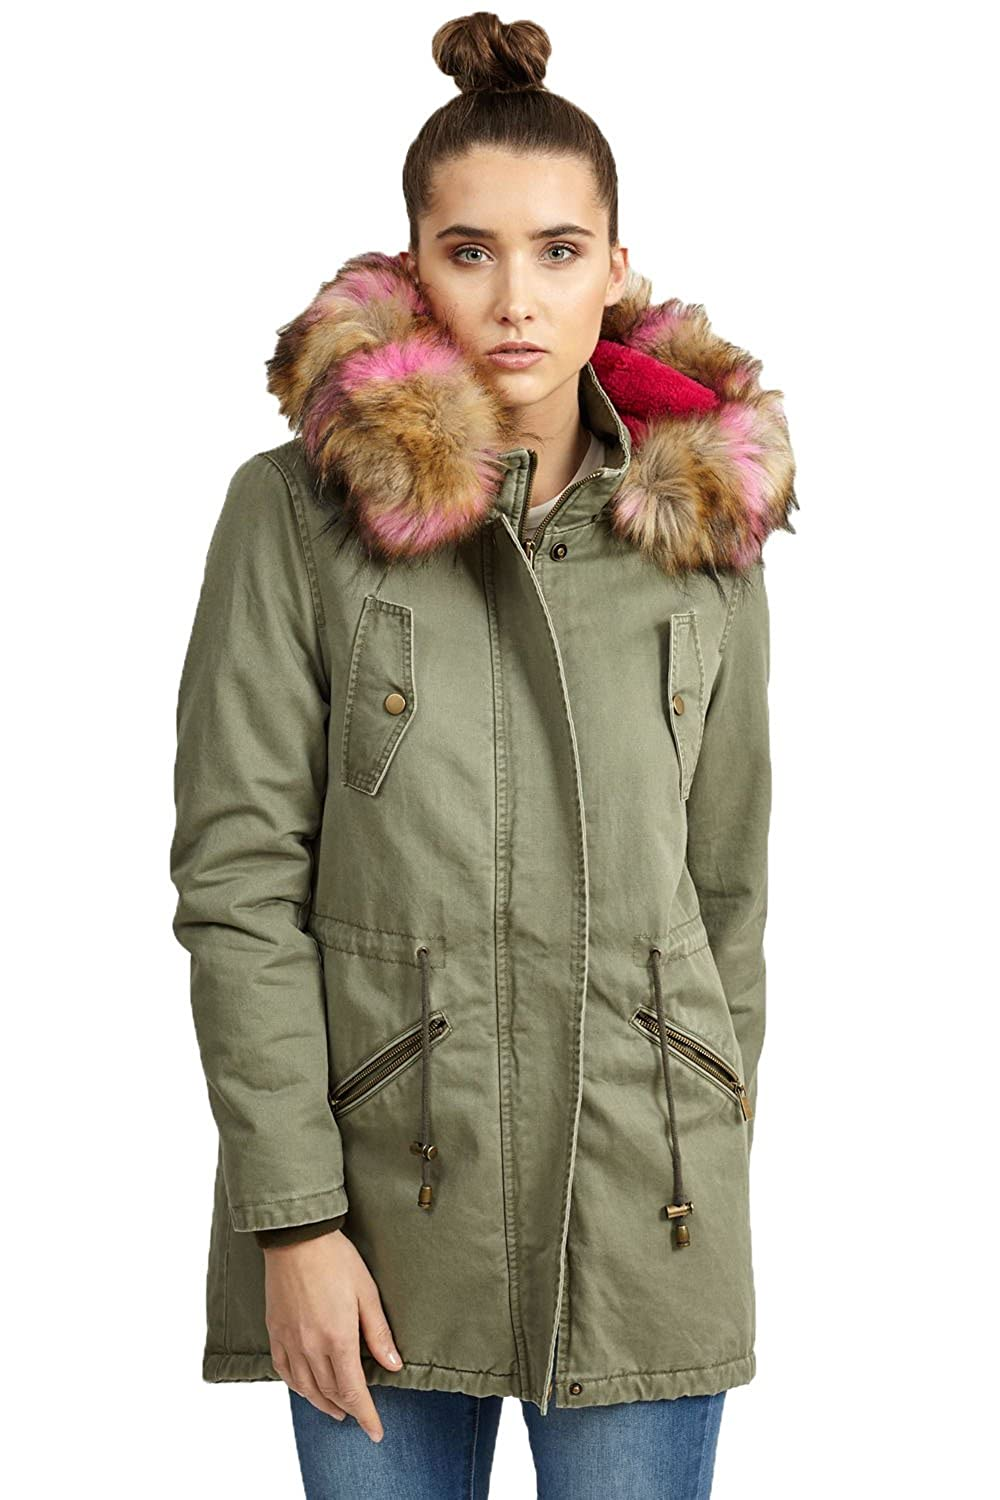 Brave Soul Womens Cotton Contrasting Faux Fur Hooded Parka Coats:  Amazon.co.uk: Clothing